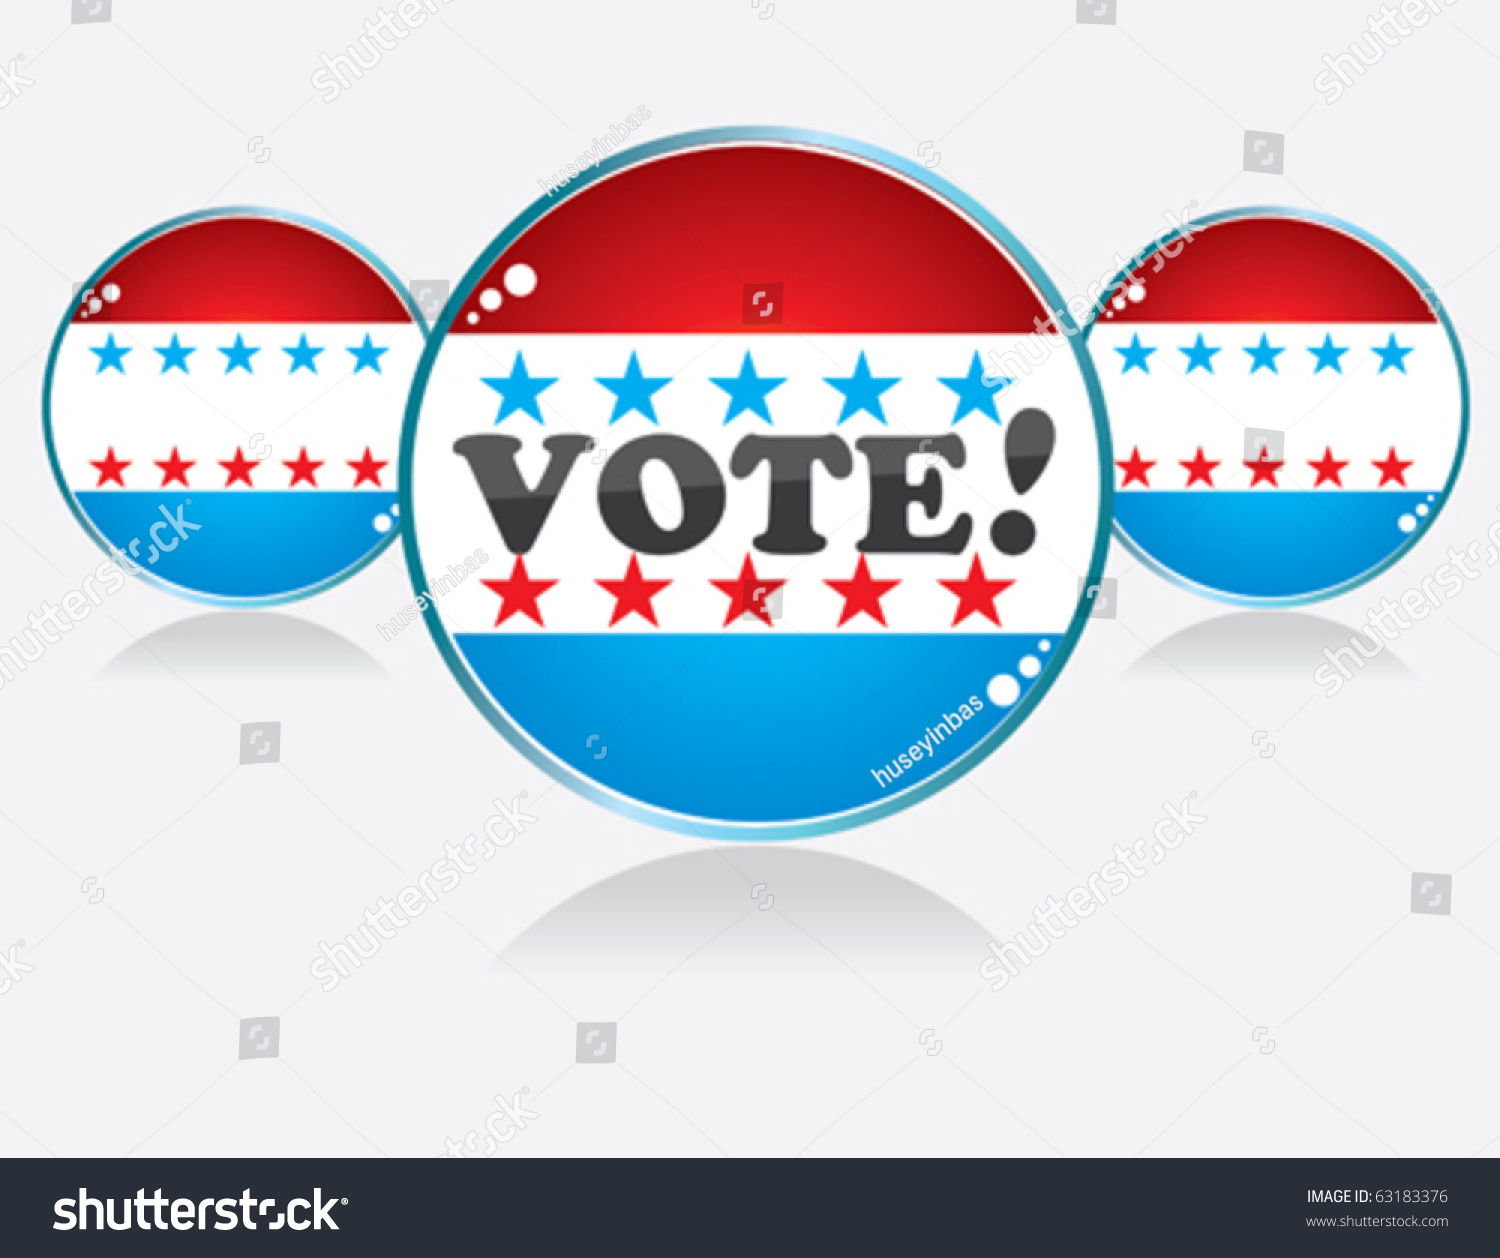 united states elections project The administration of elections in the united states is handled by state election boards and local supervisors (titles may vary)  and eligible population, united states election project.